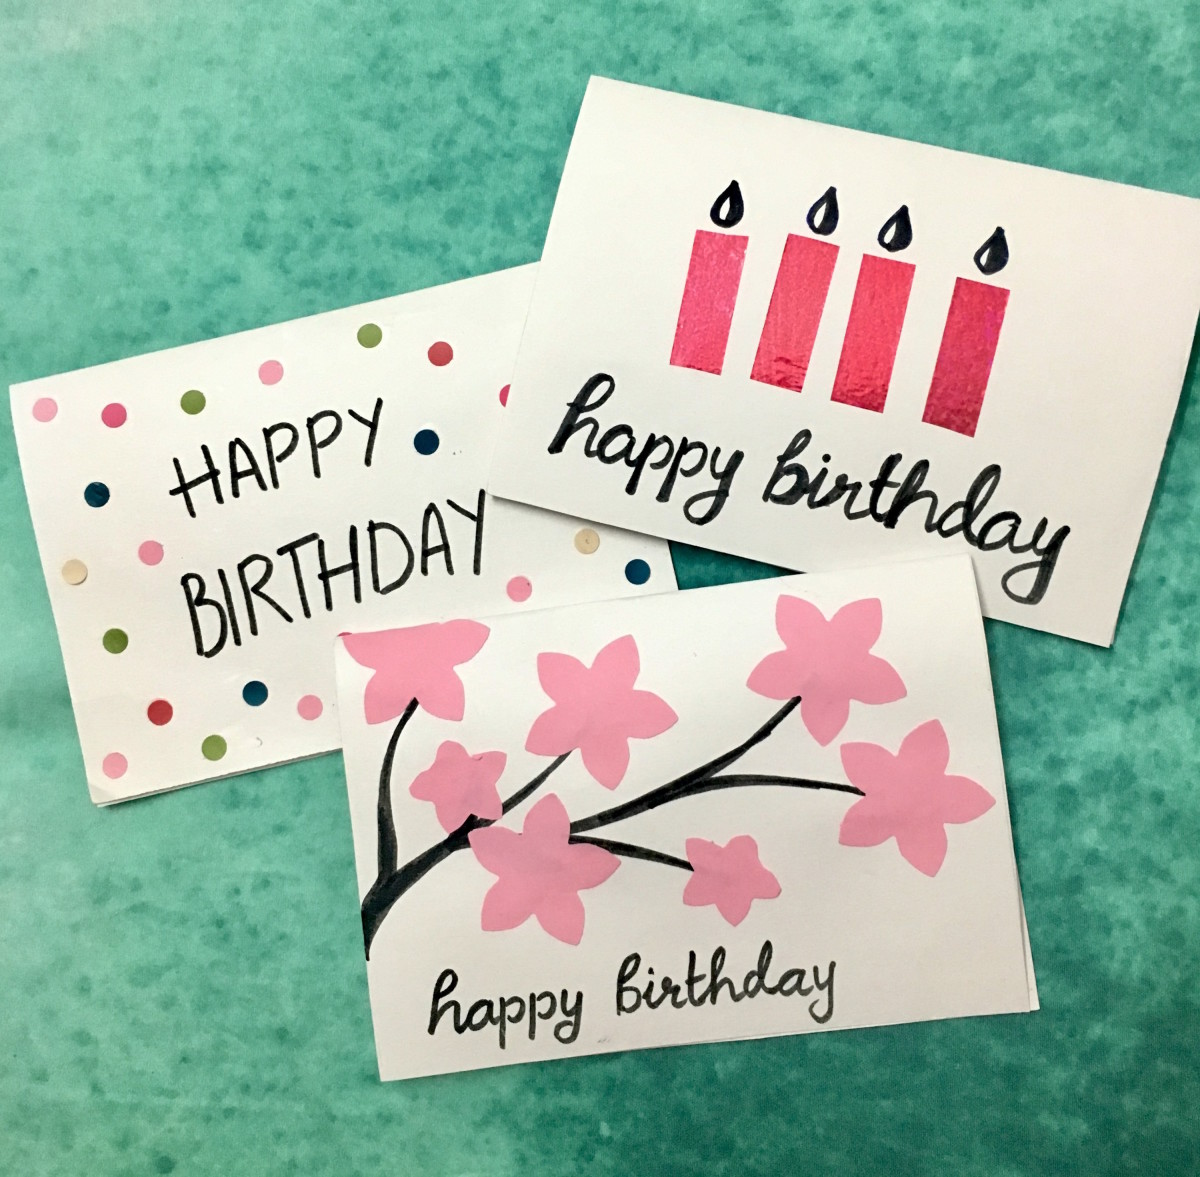 3 Easy, 5minute, Diy Birthday Greeting Cards  Holidappy